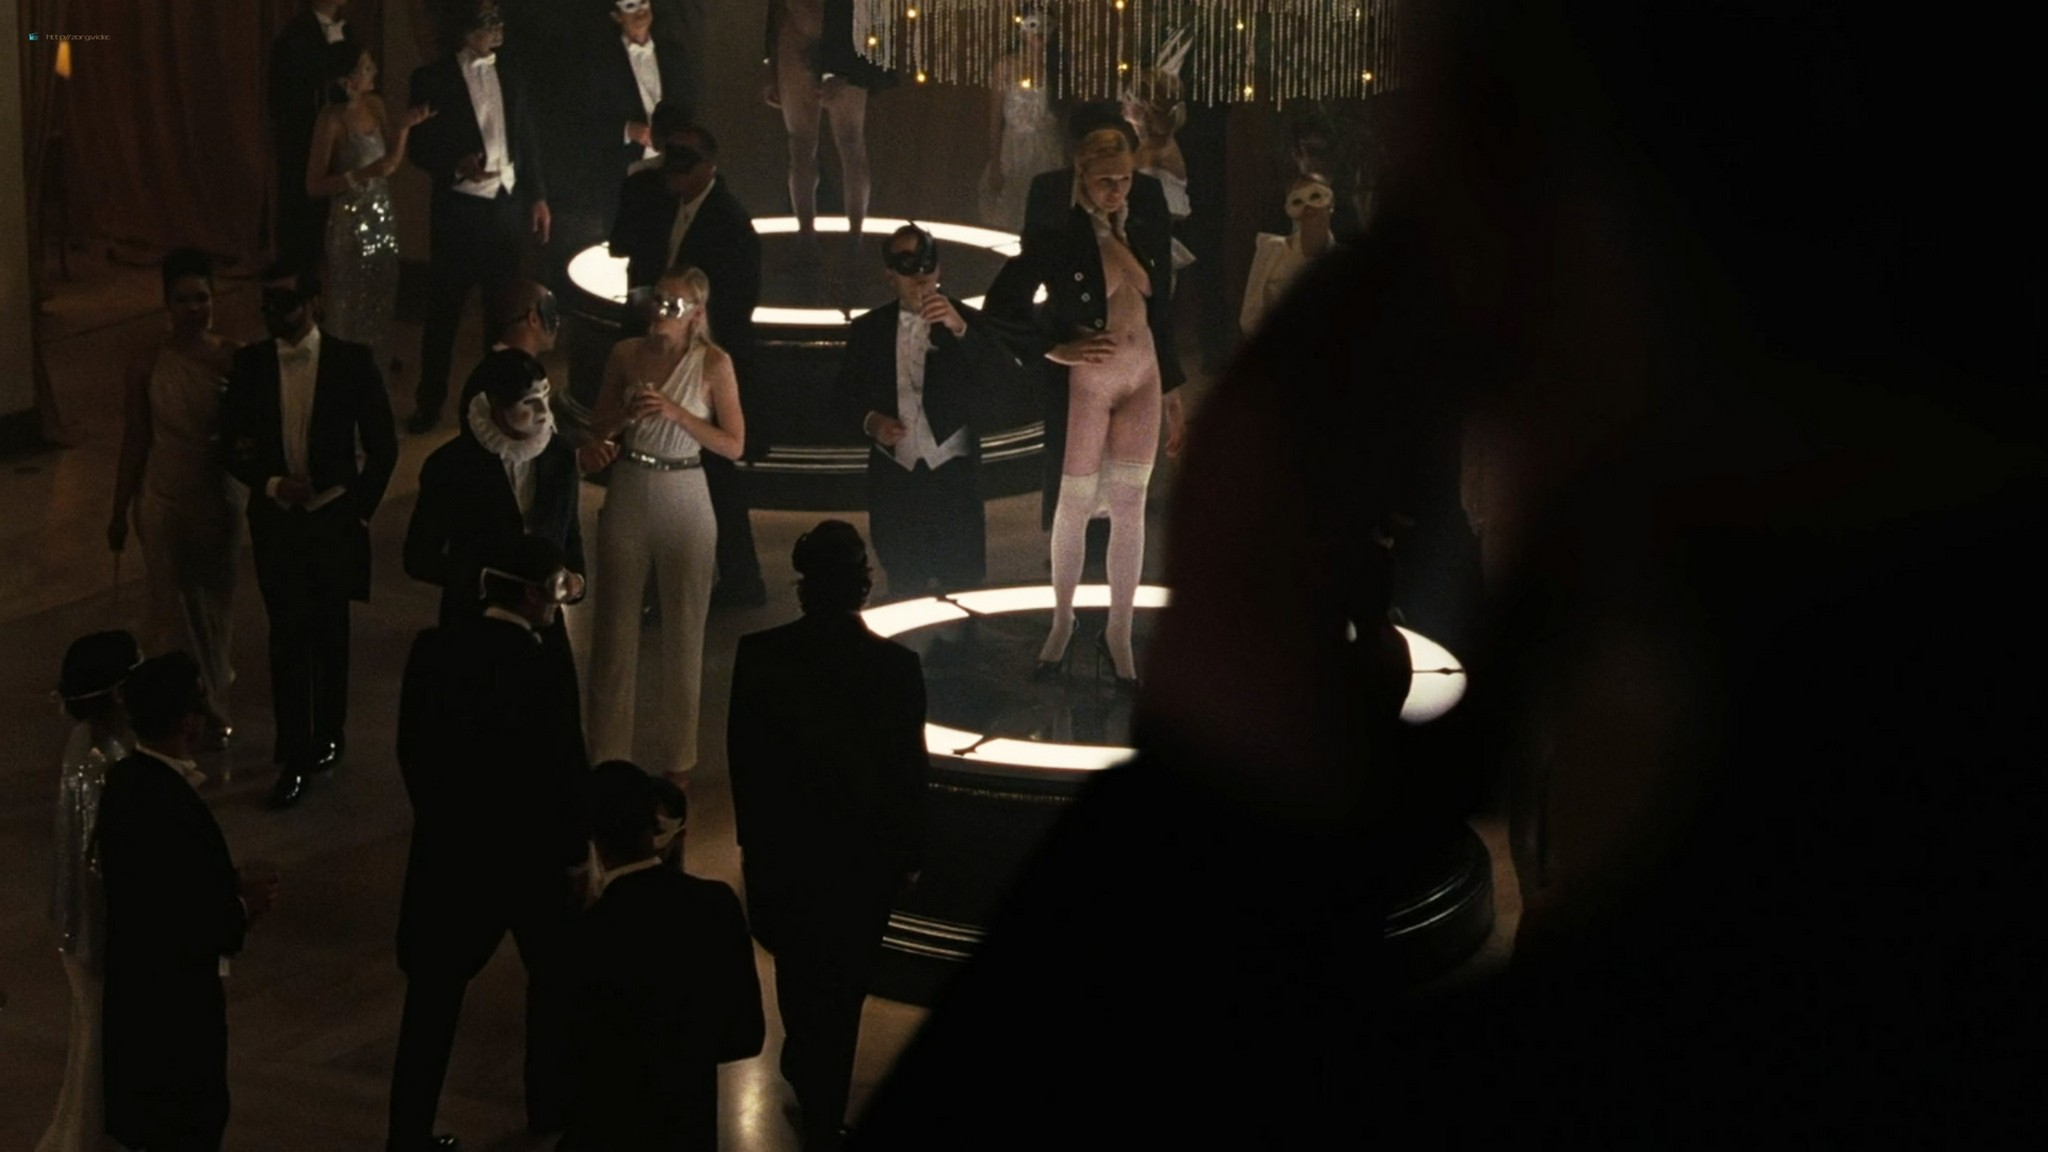 Katherine Murphy nude full frontal - Westworld (2020) s3e4 HD 1080p (5)